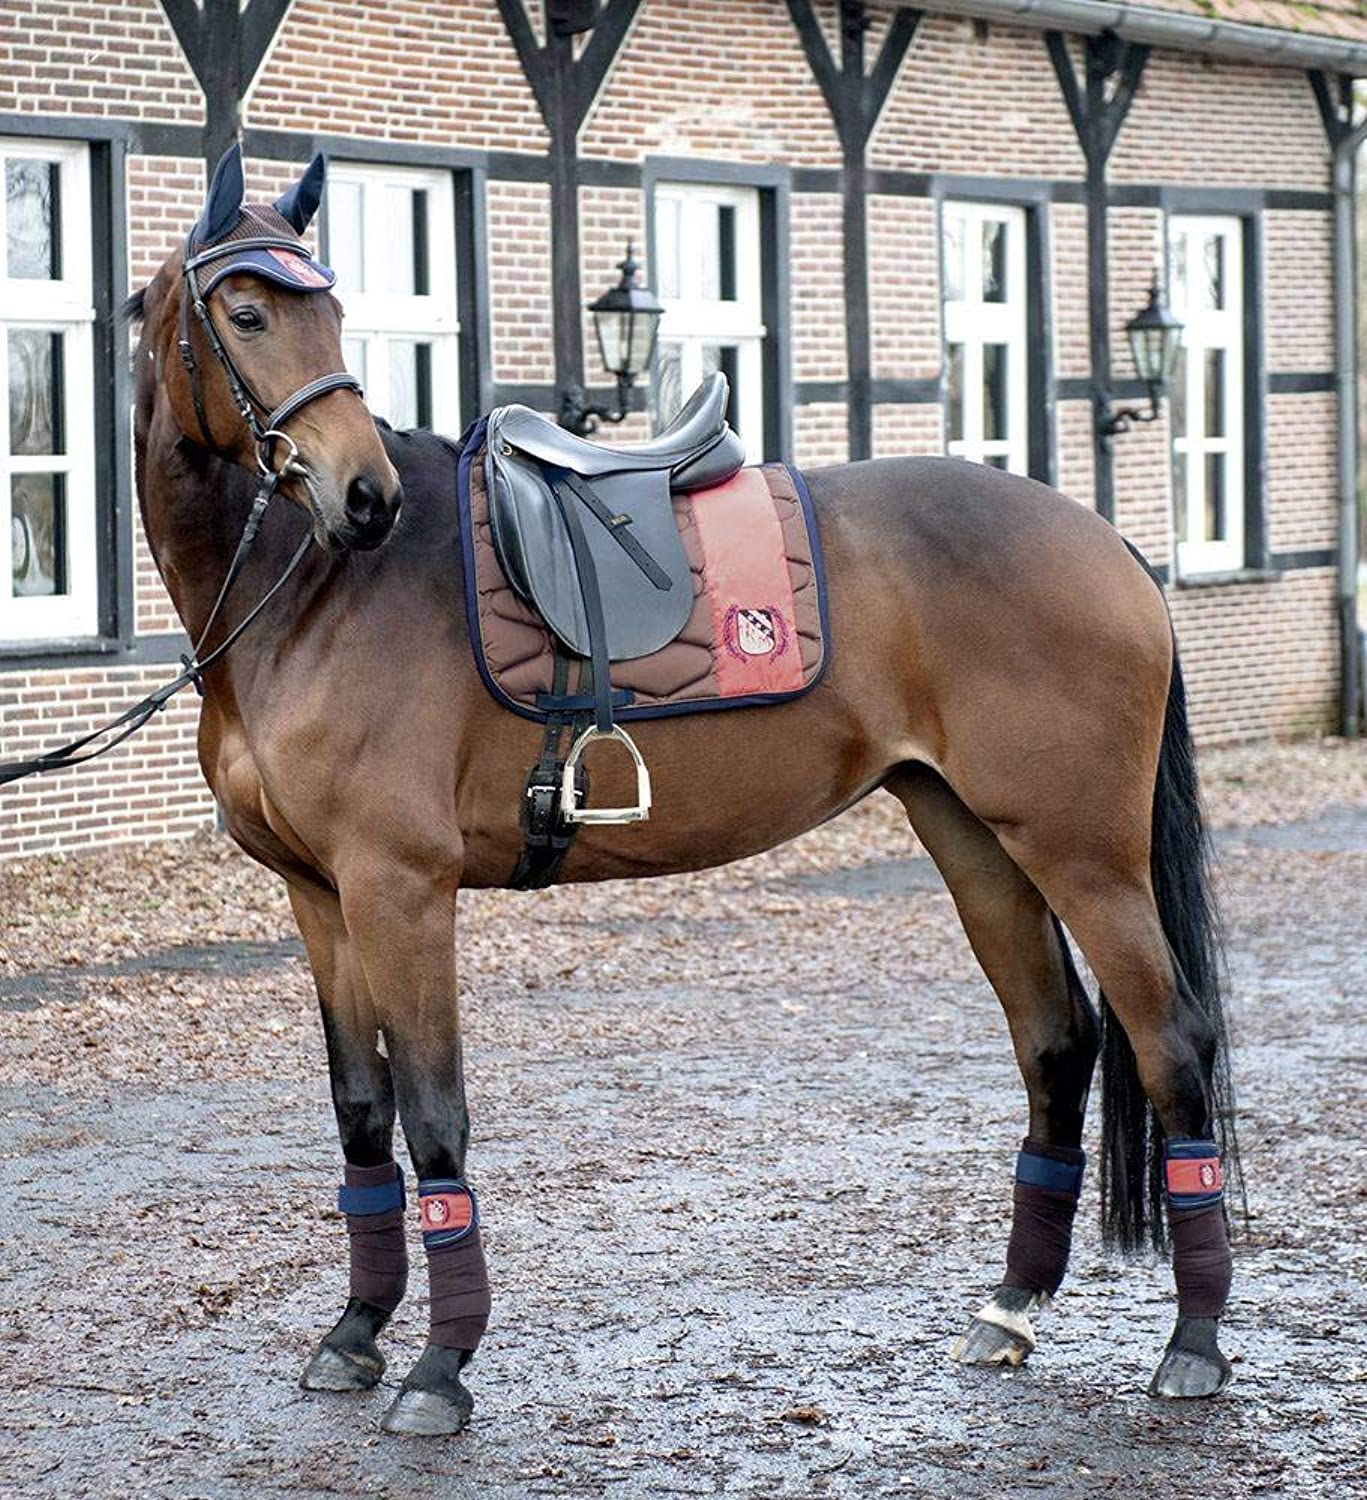 Hkm SADDLE PAD Exclusive Crown